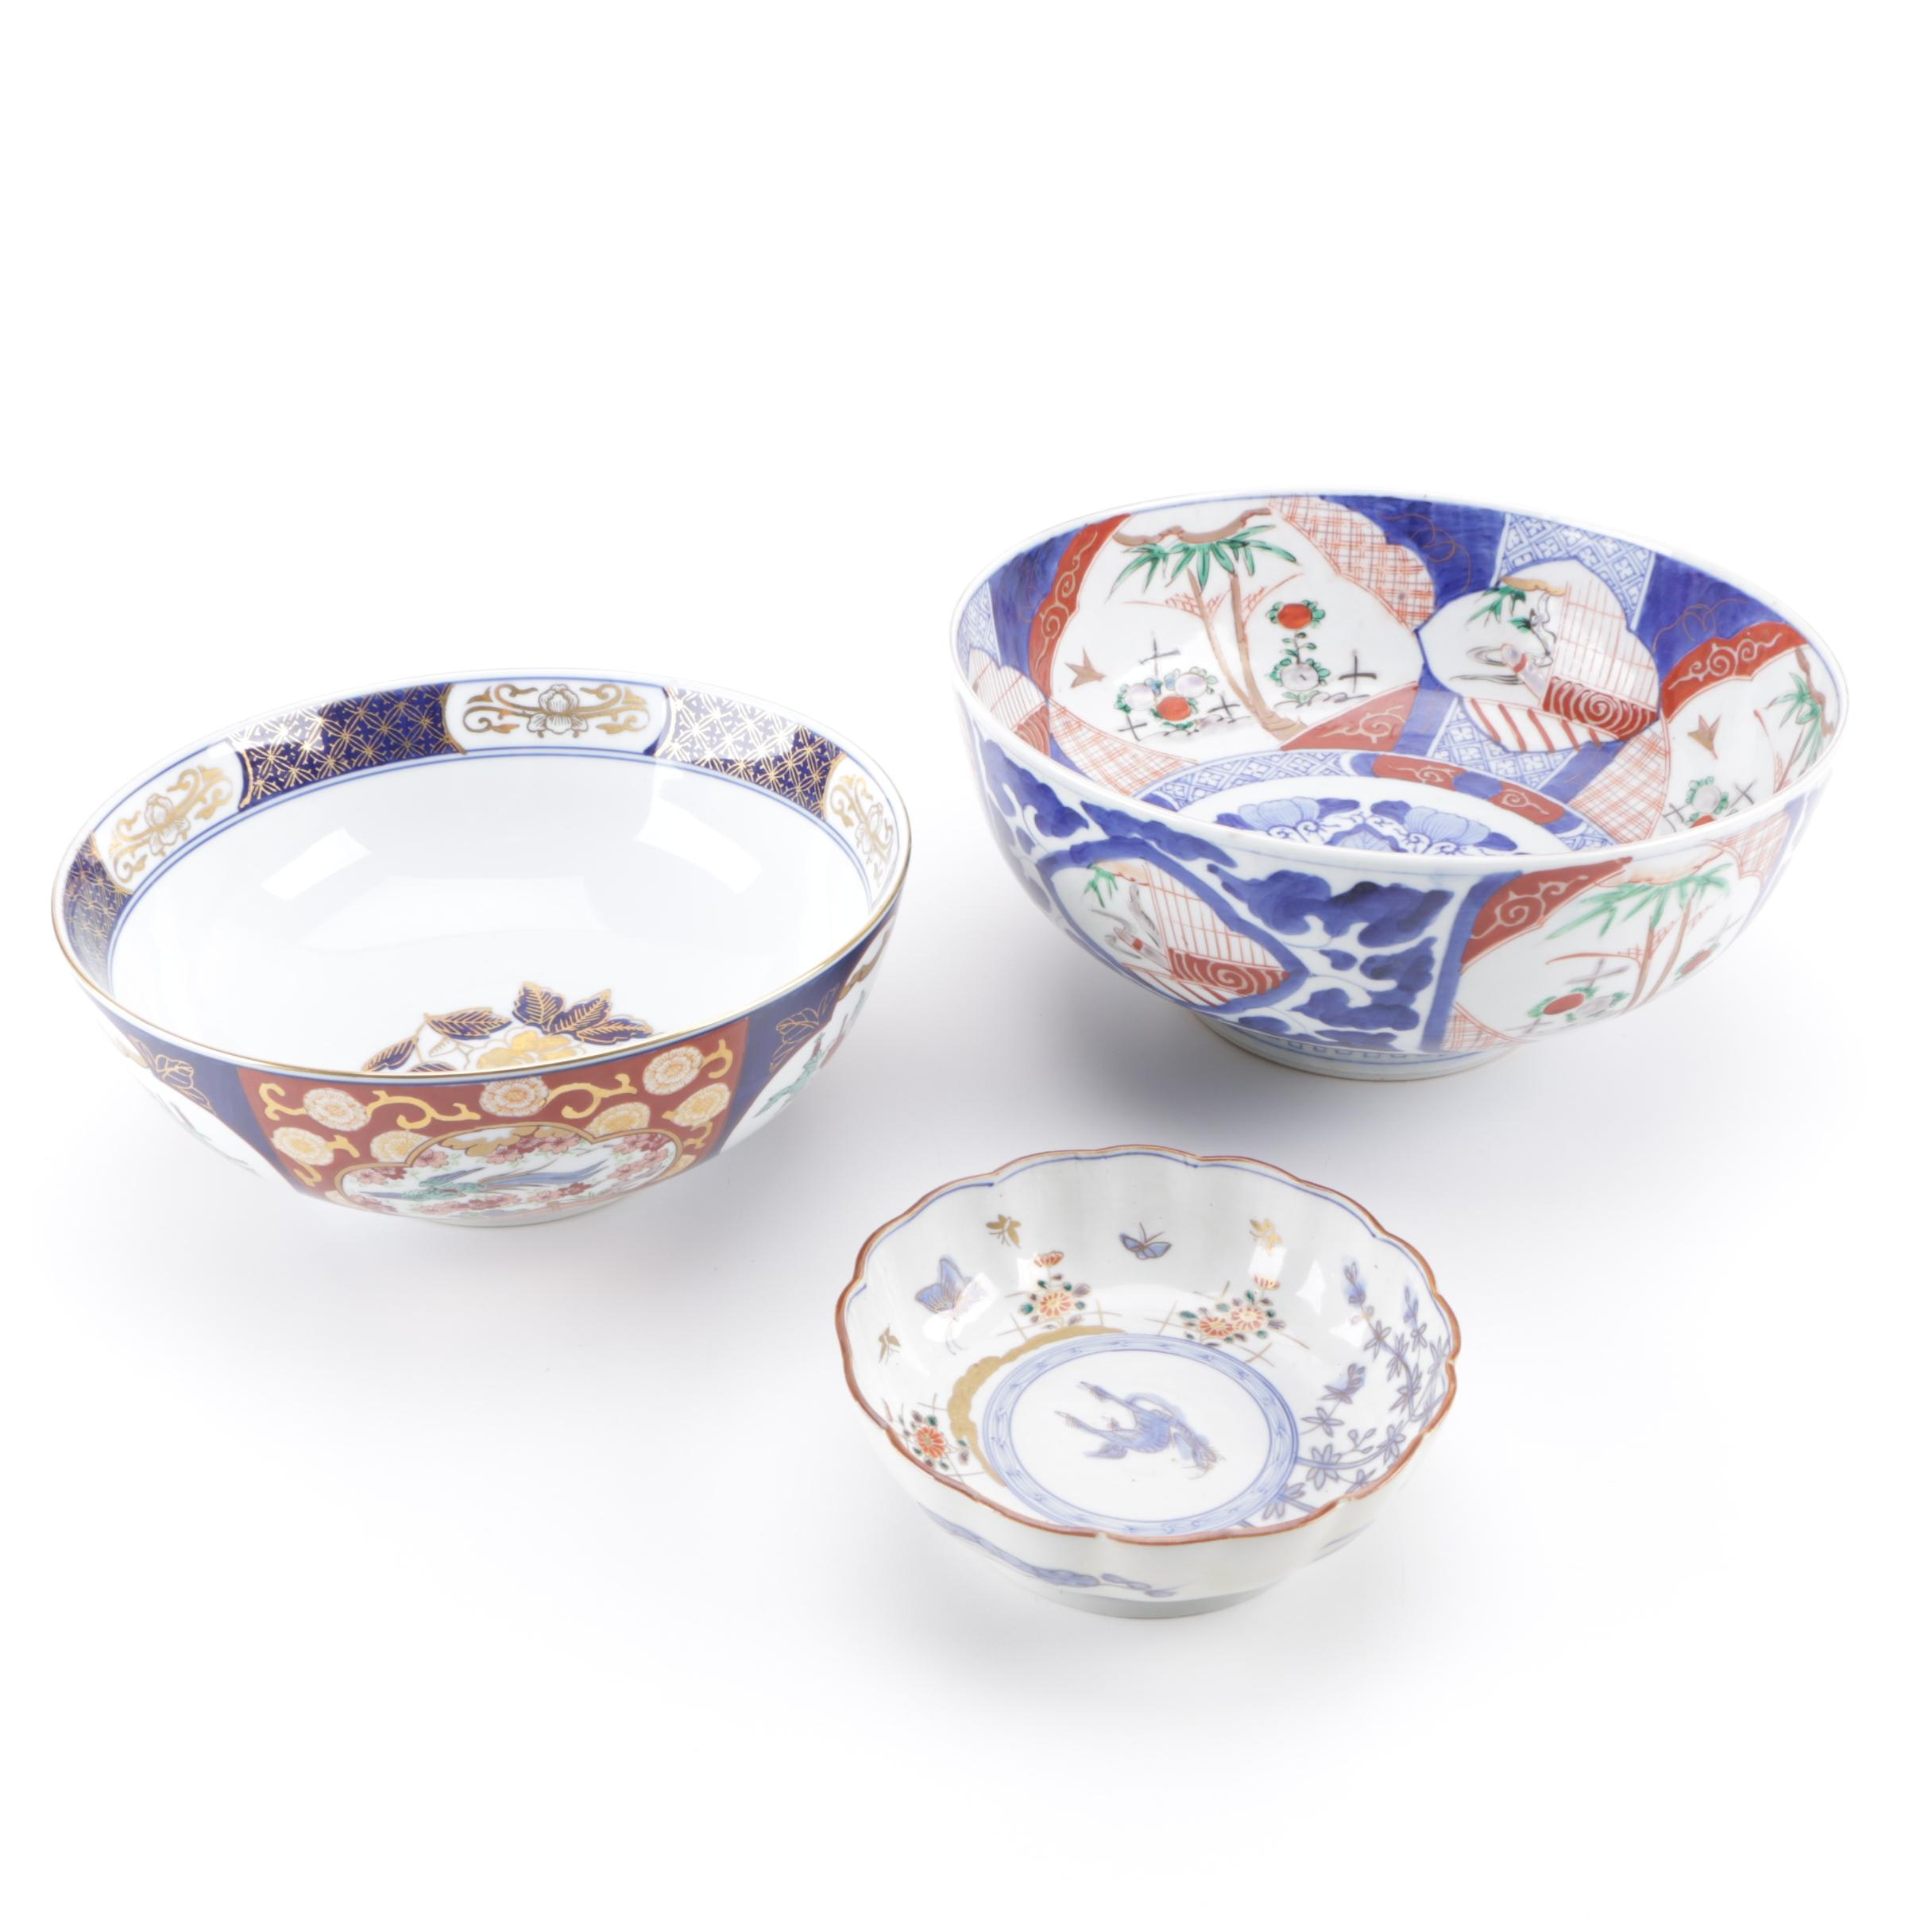 Collection of Three Hand-Painted Asian Serving Bowls